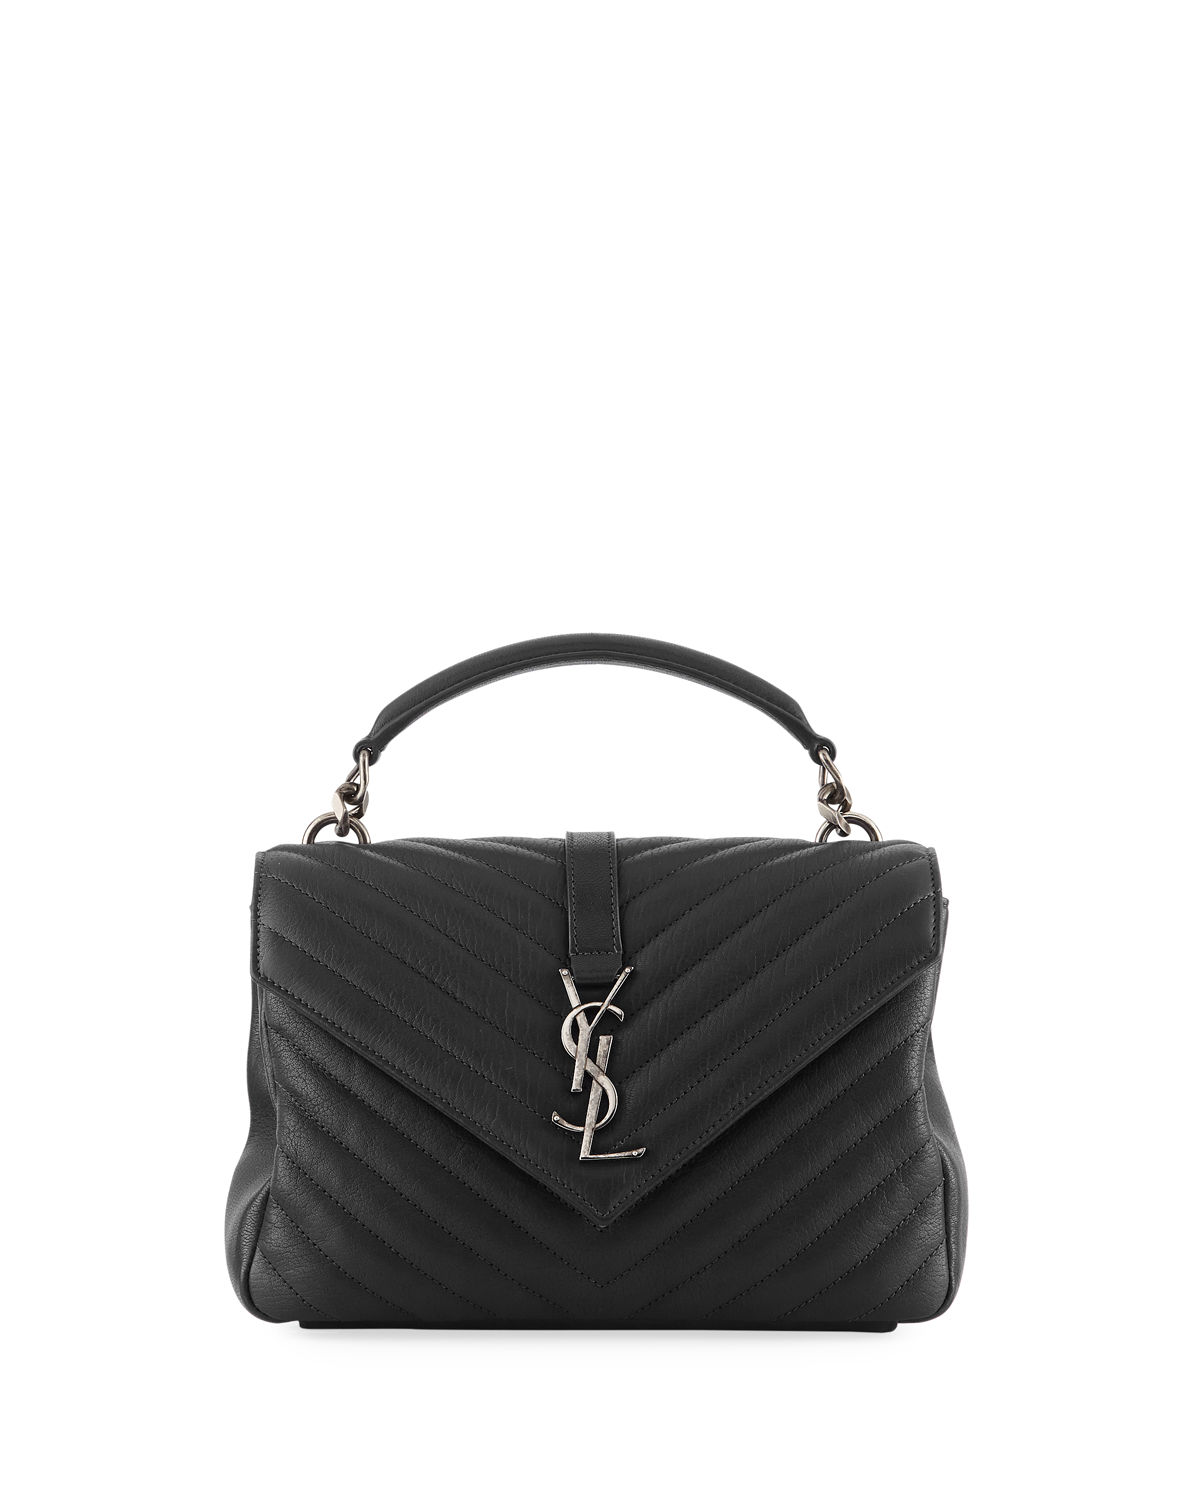 3ed22e149bb0 Saint LaurentCollege Medium Monogram YSL V-Flap Crossbody Bag - Silver  Hardware